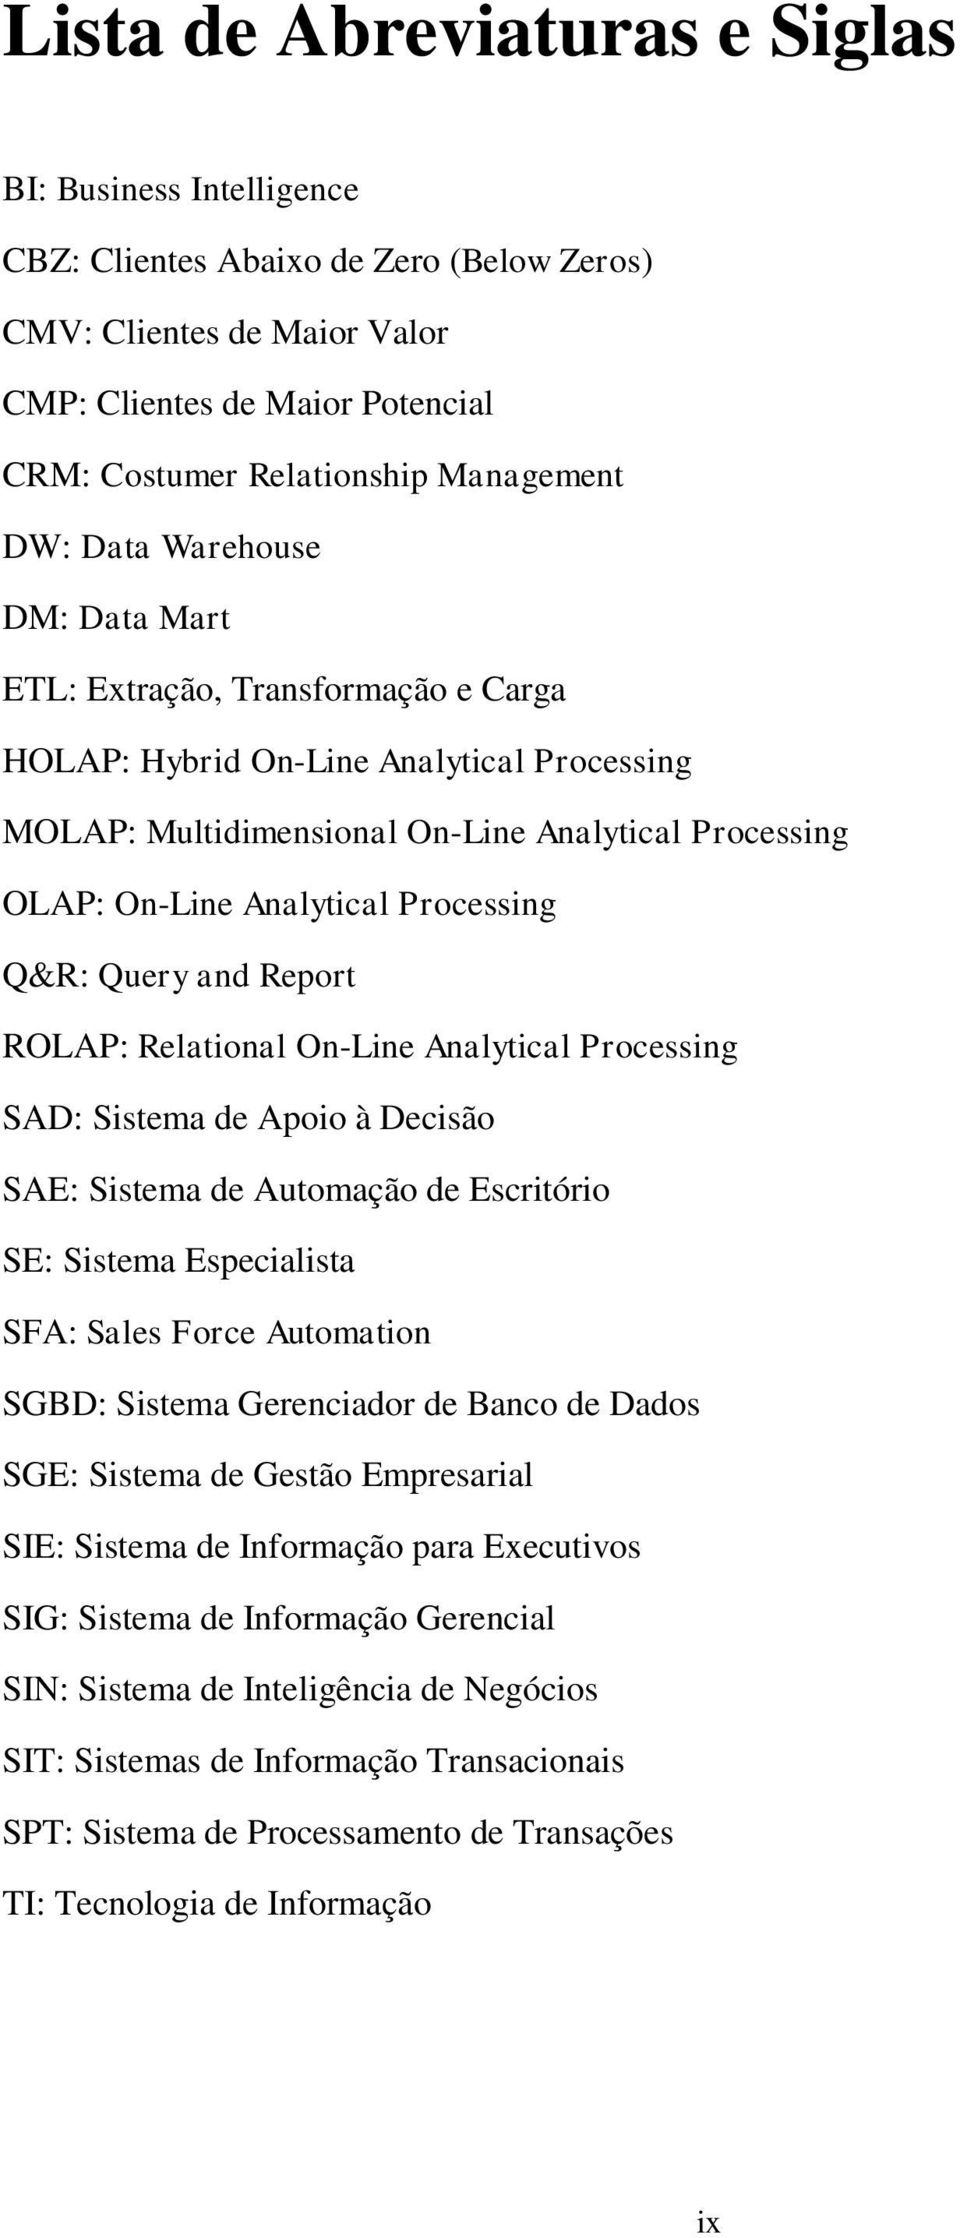 Processing Q&R: Query and Report ROLAP: Relational On-Line Analytical Processing SAD: Sistema de Apoio à Decisão SAE: Sistema de Automação de Escritório SE: Sistema Especialista SFA: Sales Force